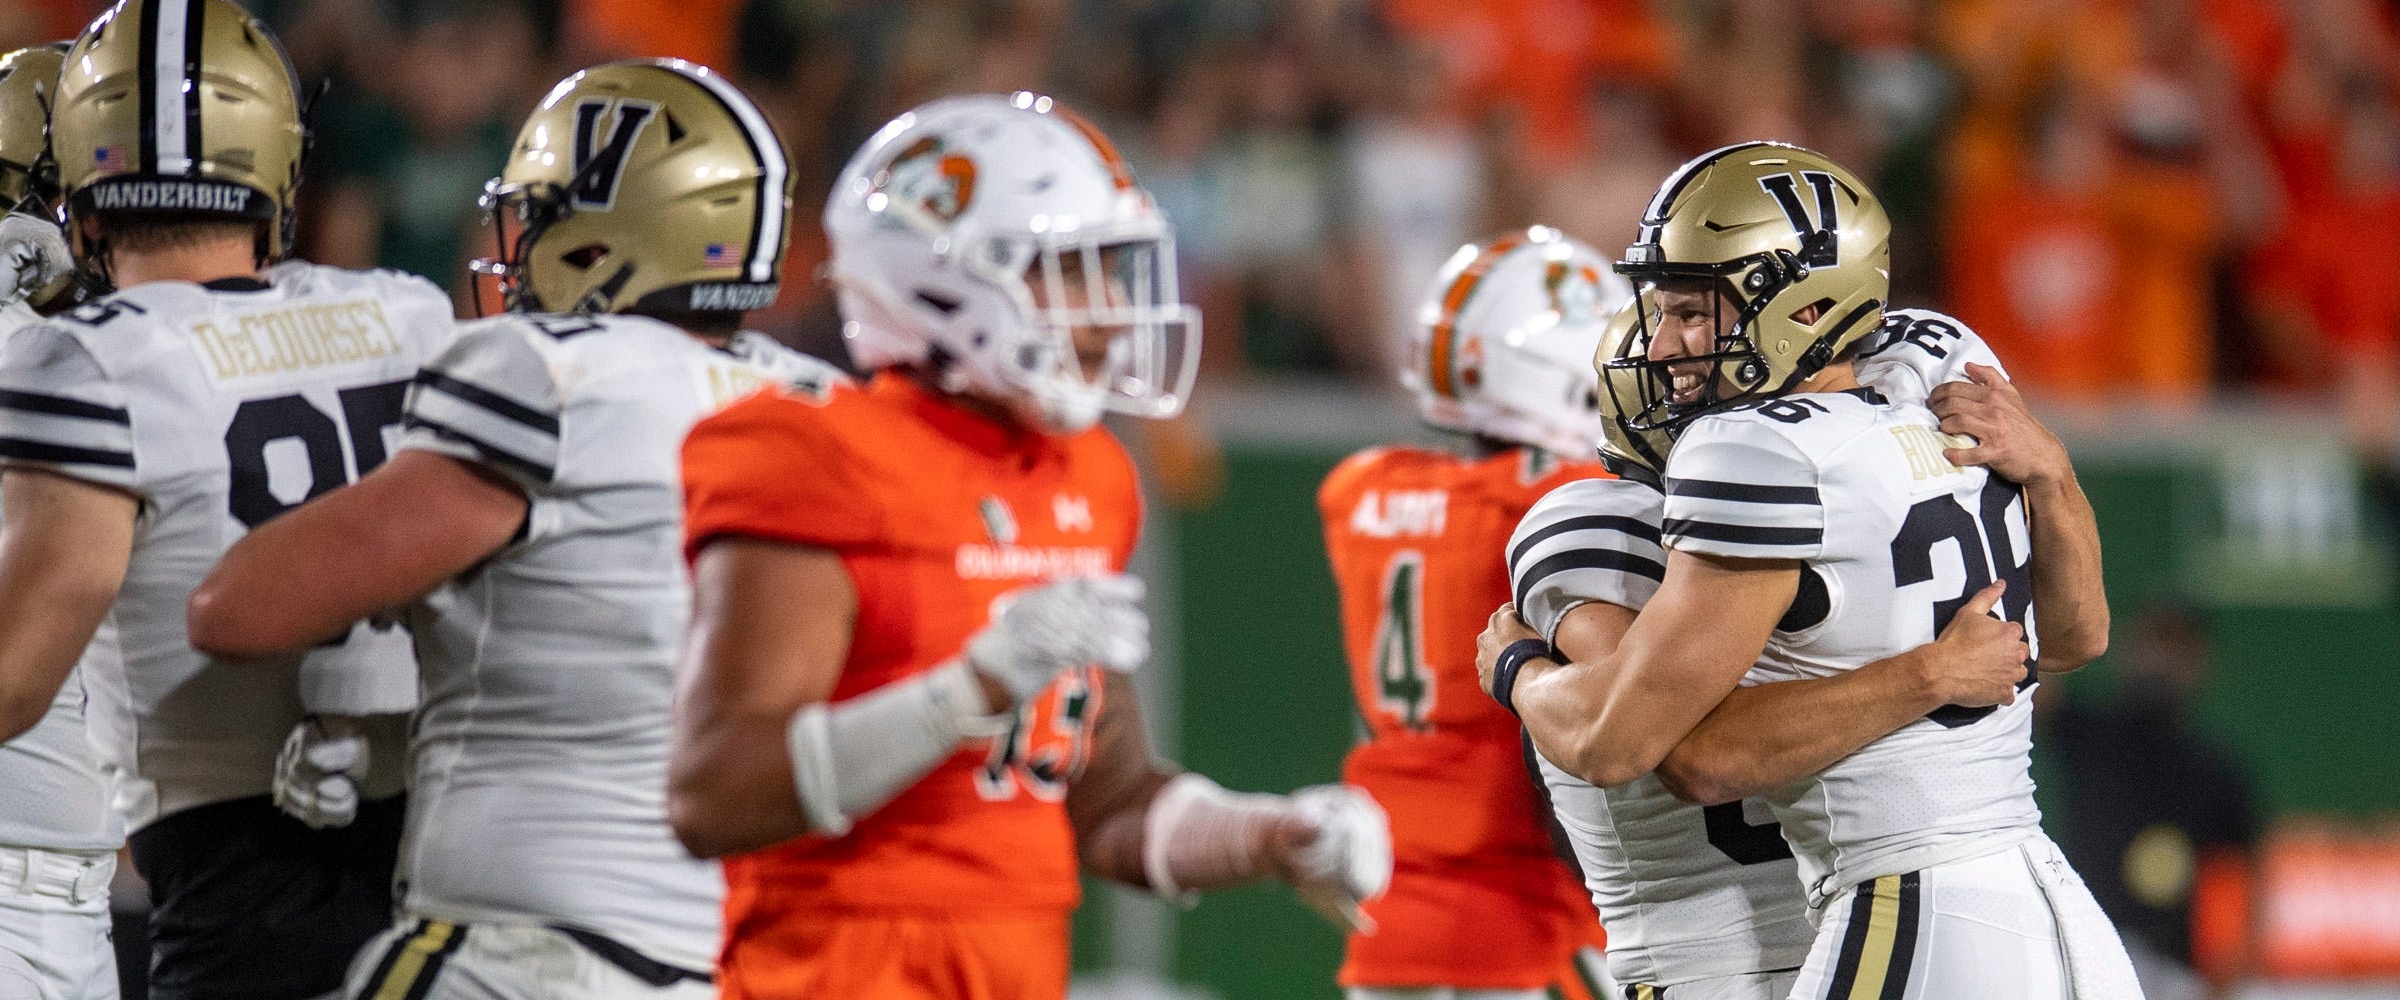 How in the world did Vanderbilt flip the script on Colorado State?!?